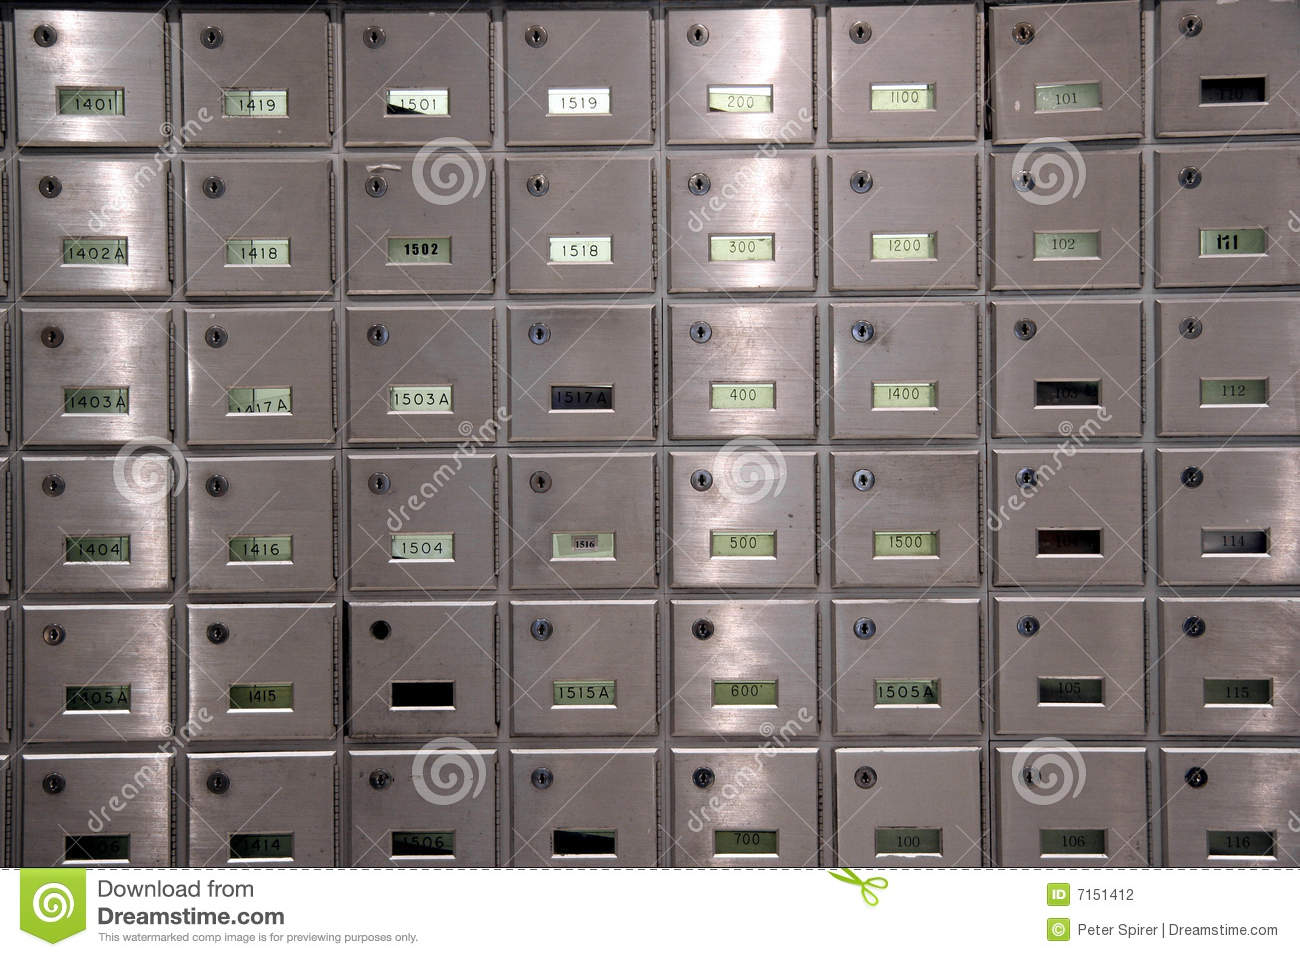 https://thumbs.dreamstime.com/z/apartment-mailboxes-7151412.jpg